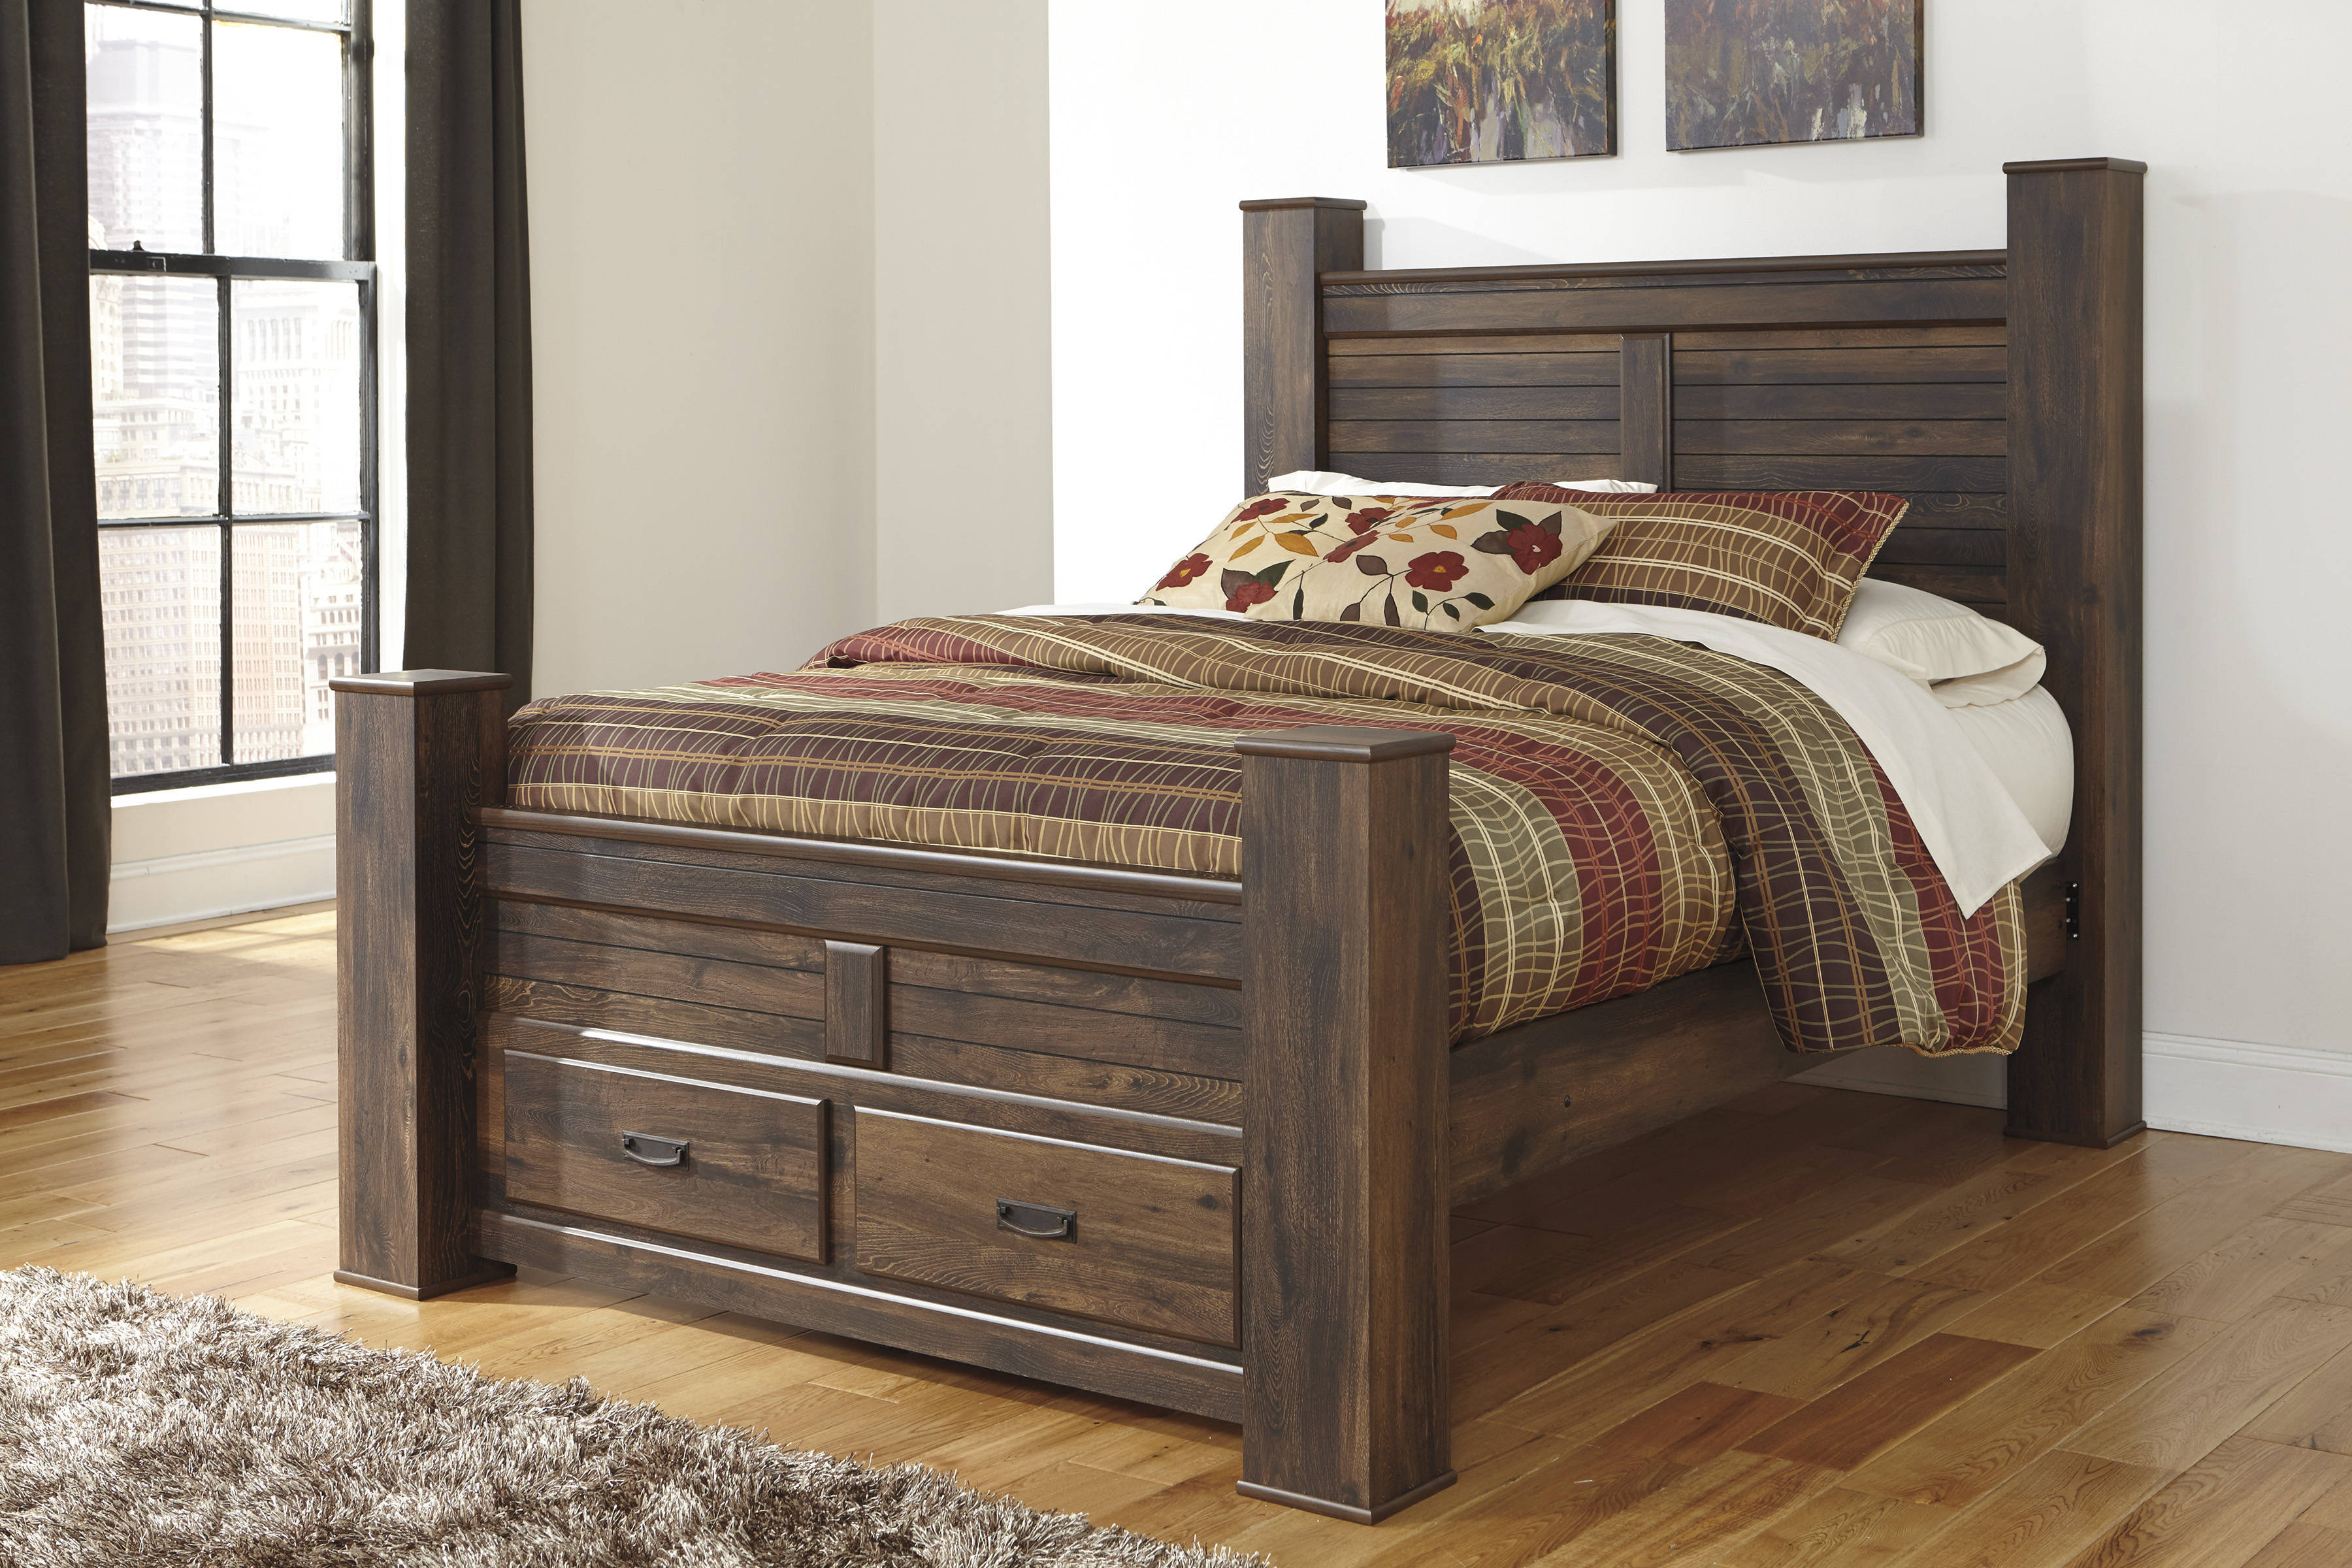 Ashley Furniture Quinden Queen Poster Storage Bed The Classy Home